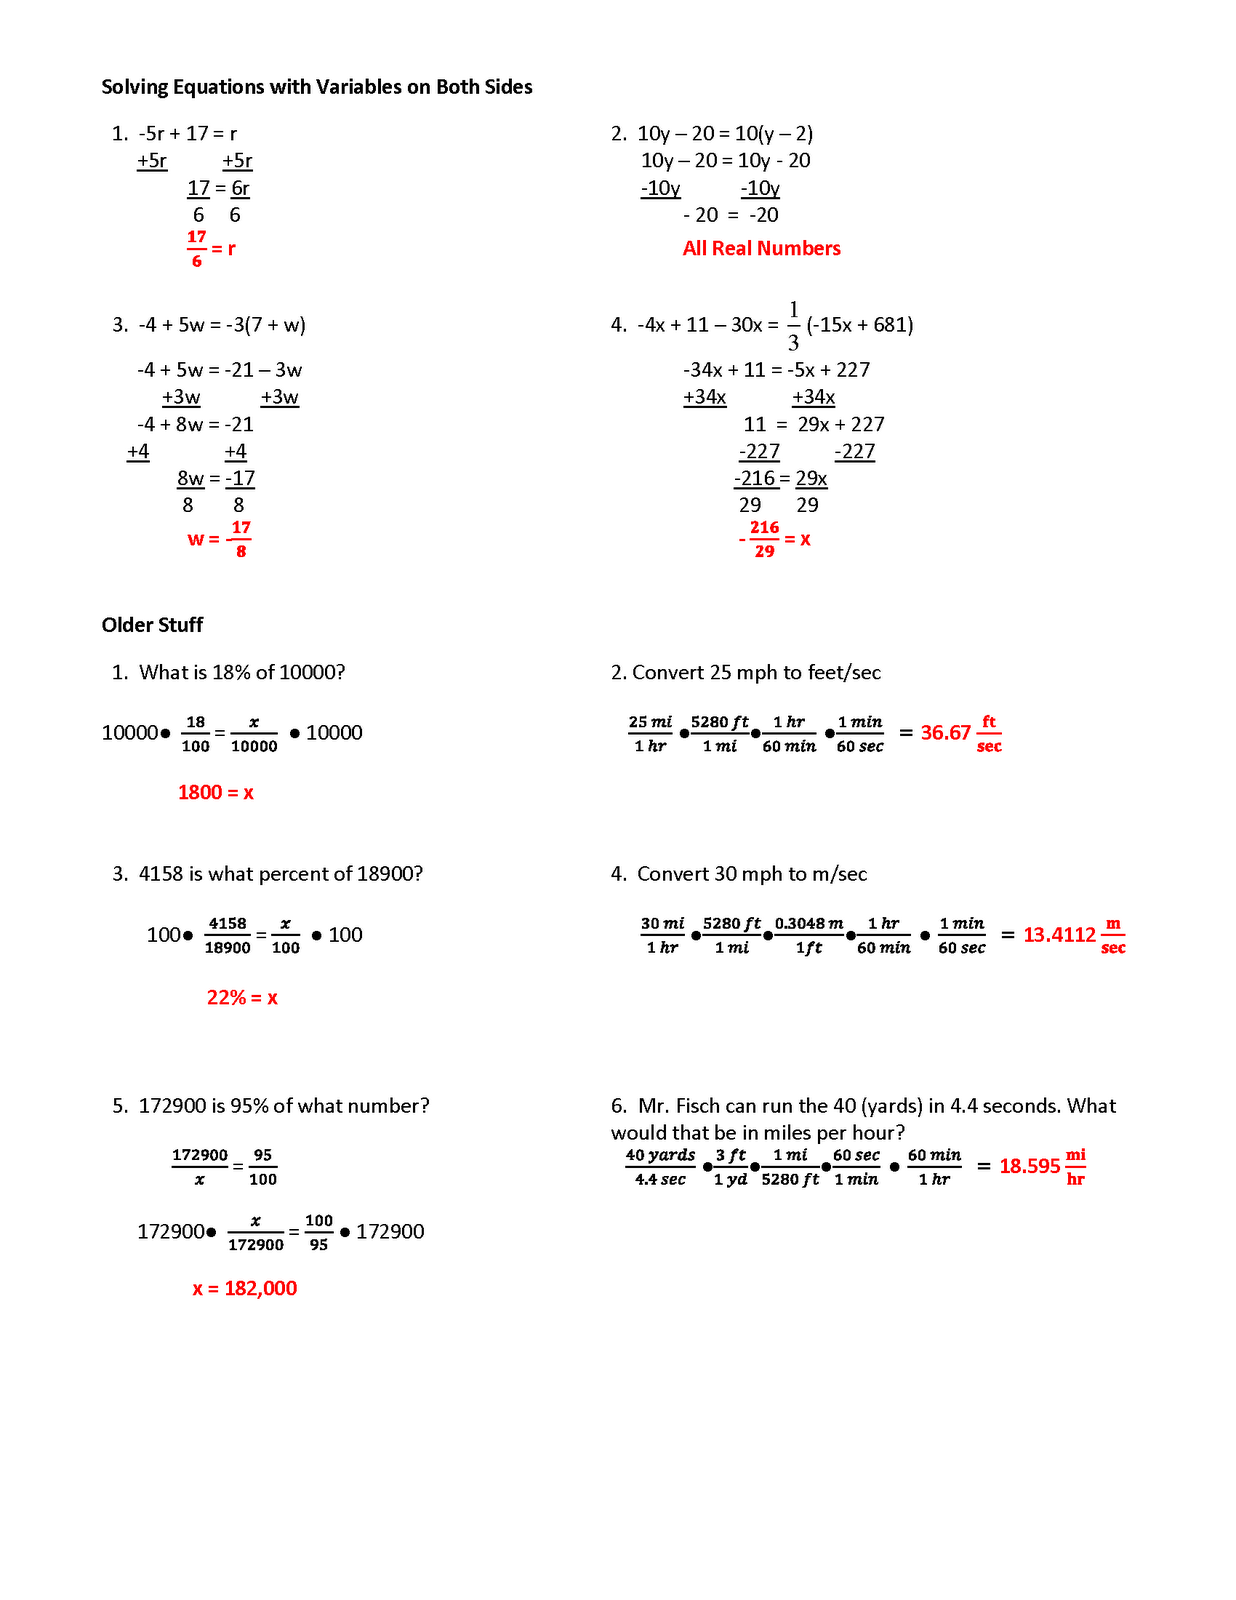 Worksheet Algebra 1 Linear Equations Worksheets transparent algebra september 2011 their homework for the weekend was to finish review worksheet if necessary and prepare assessment on monday over graphing linear equations